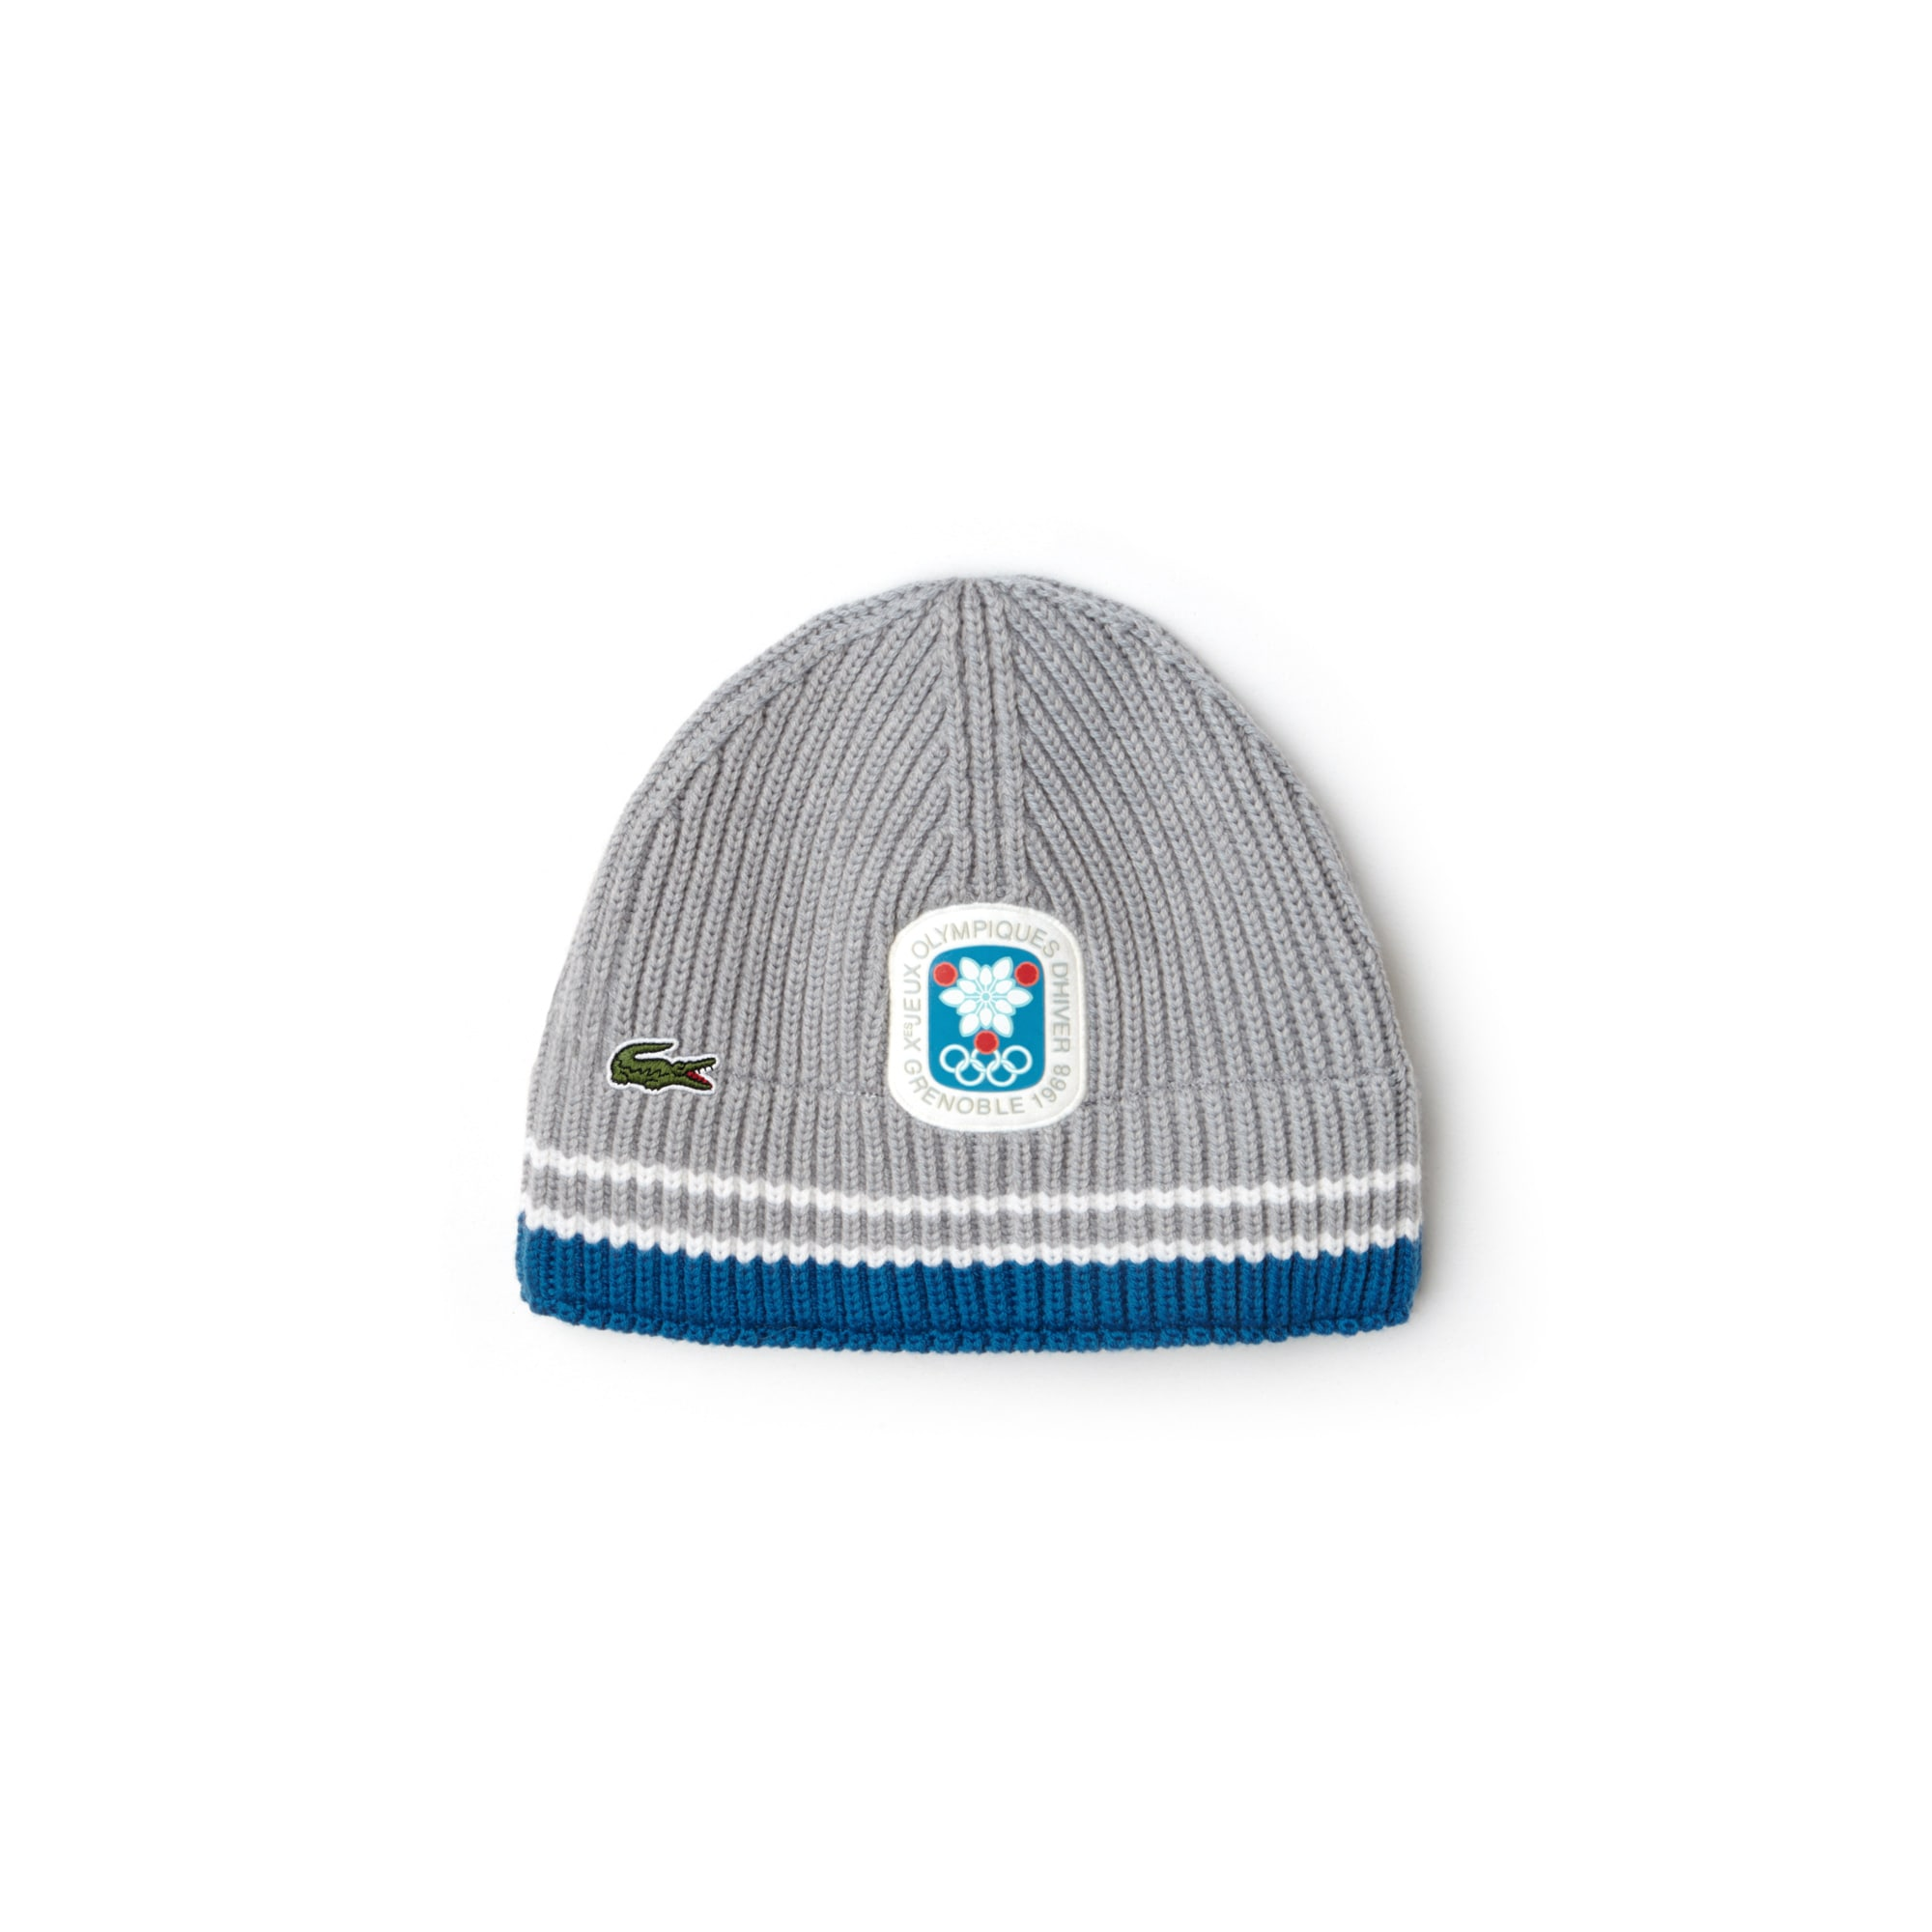 Olympic Heritage Collection by Lacoste Unisex Wool Beanie